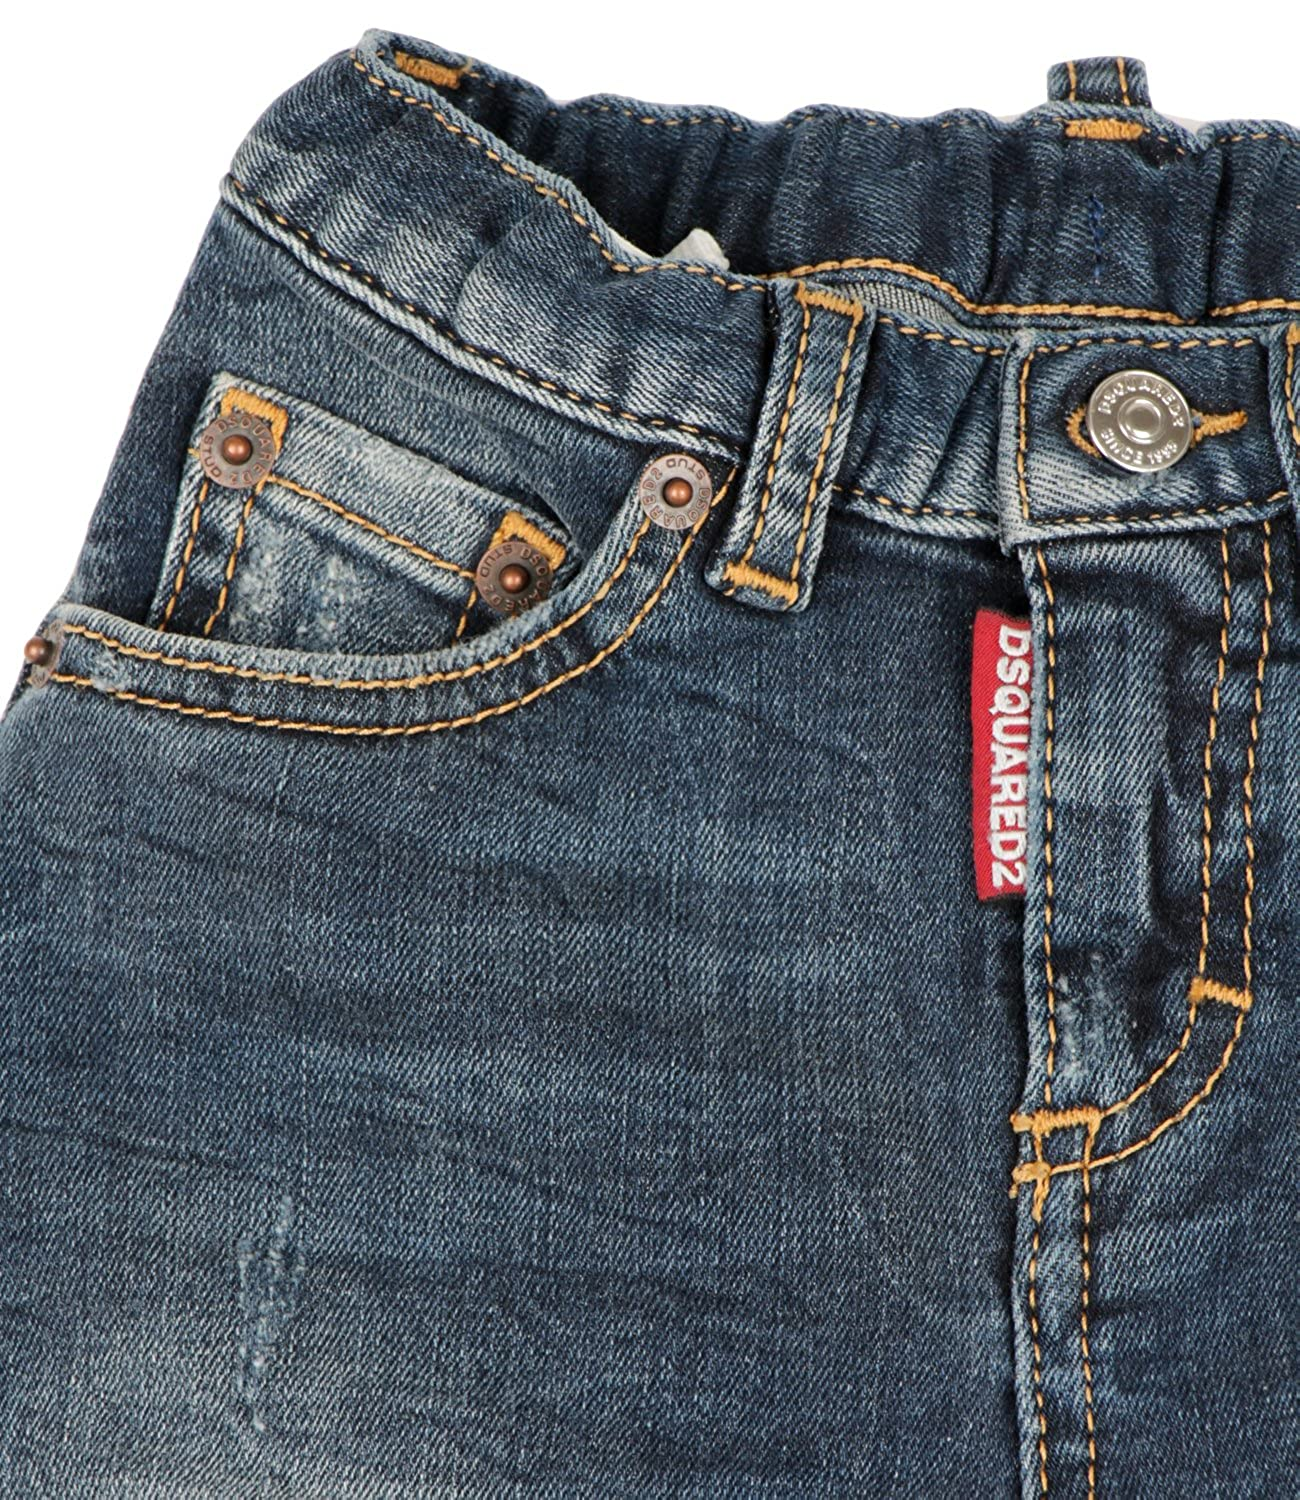 0d029d588 Dsquared2 Jeans Bambino Baby Boy Mod. DQ02SE: Amazon.co.uk: Clothing